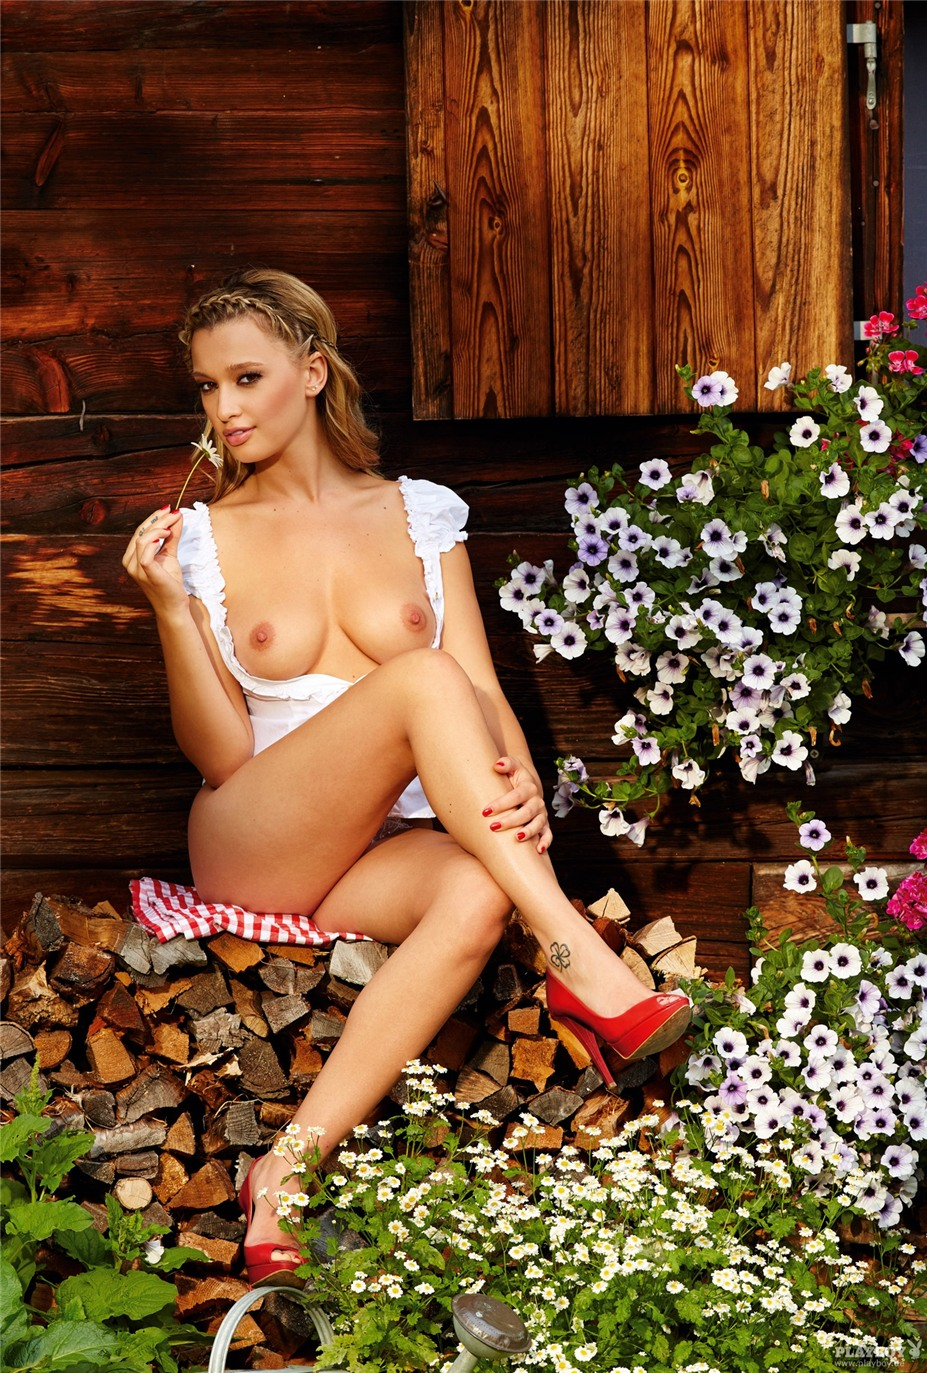 Девушка месяца Каролина Витковска / Karolina Witkowska - Playboy Germany october 2013 playmate